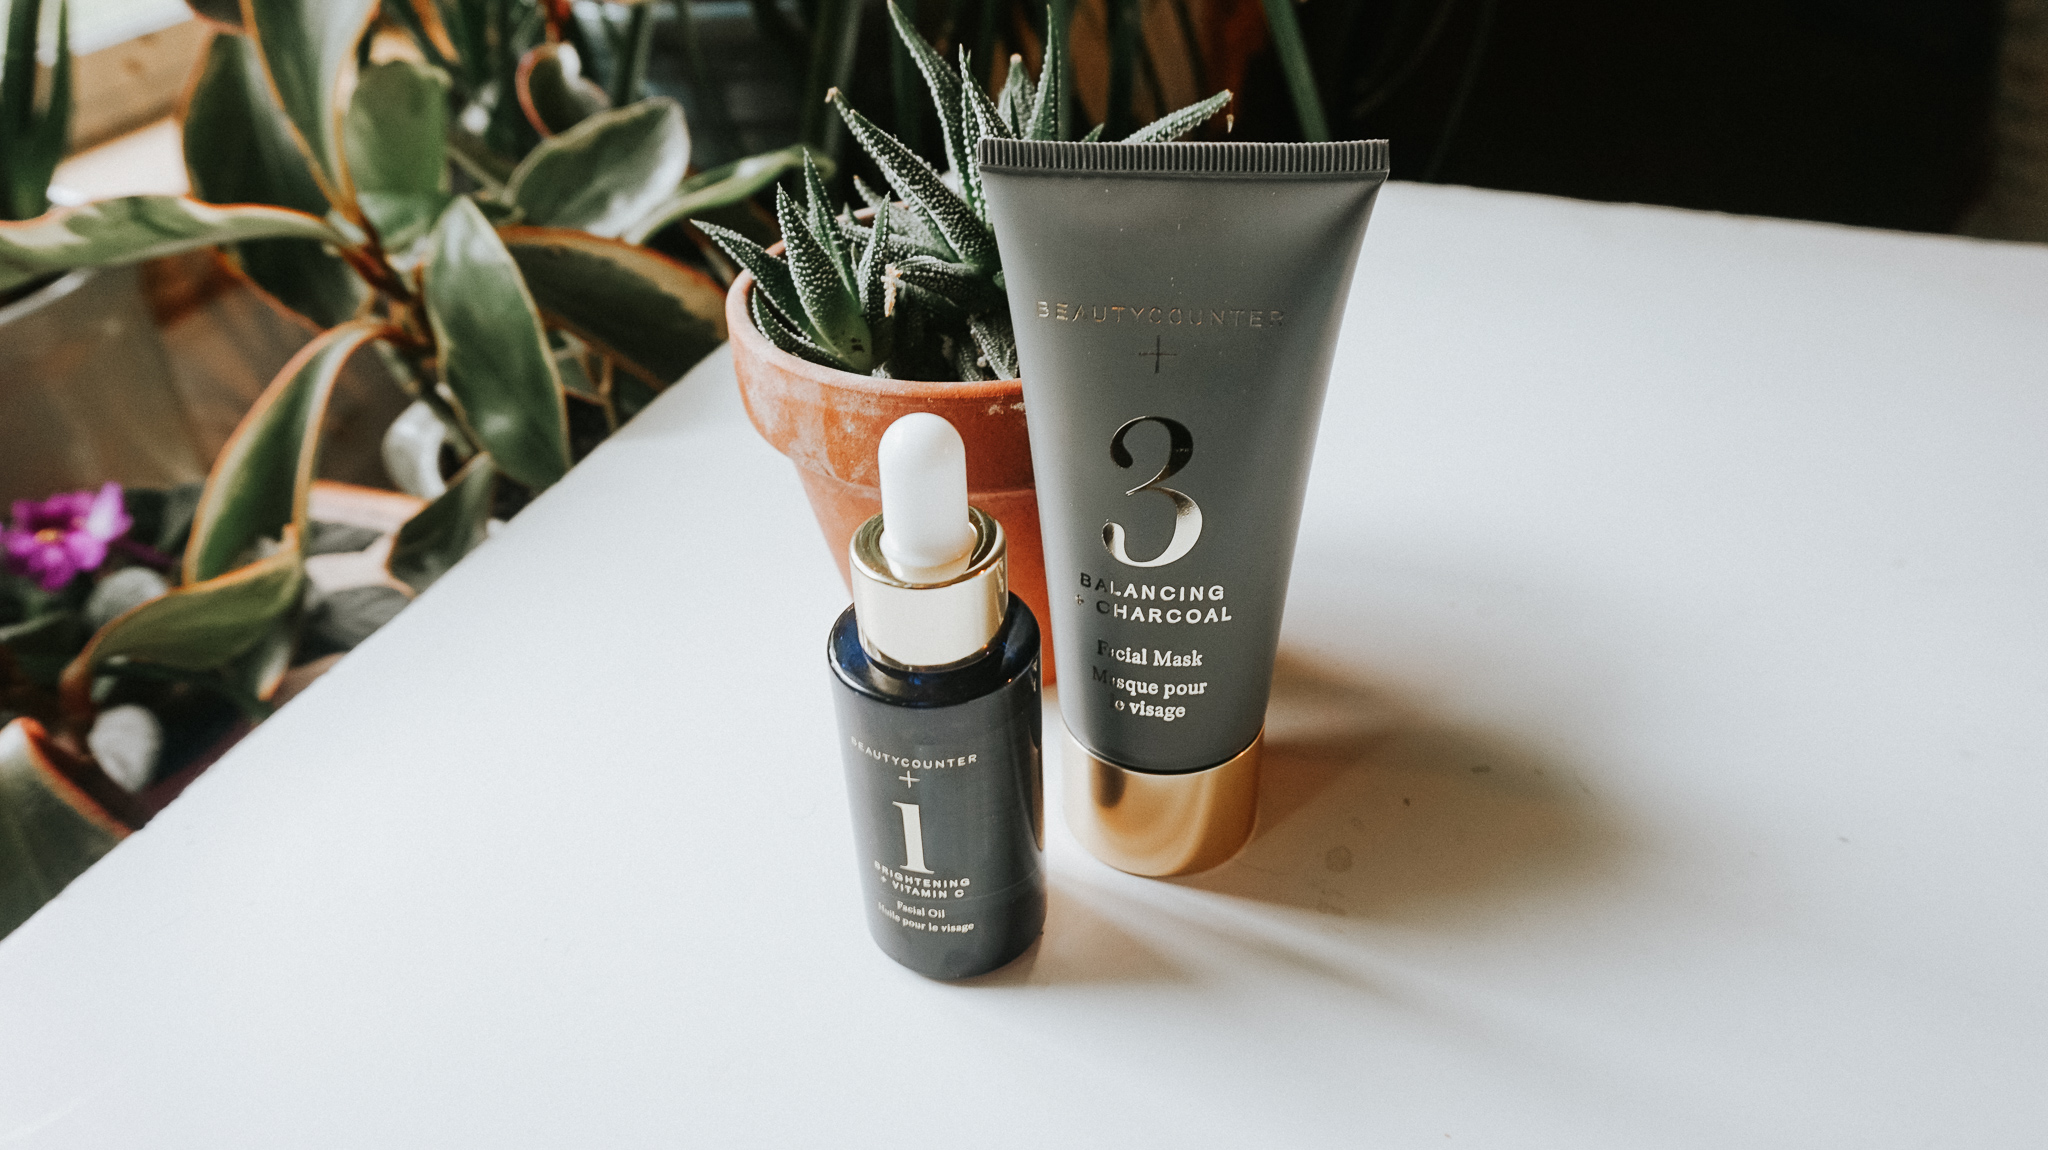 Pictured is the Beautycouter  No.1 Brightening Facial Oil  and the  Charcoal Mask . This combo leaves my skin looking so freakin glowy I'm in love.